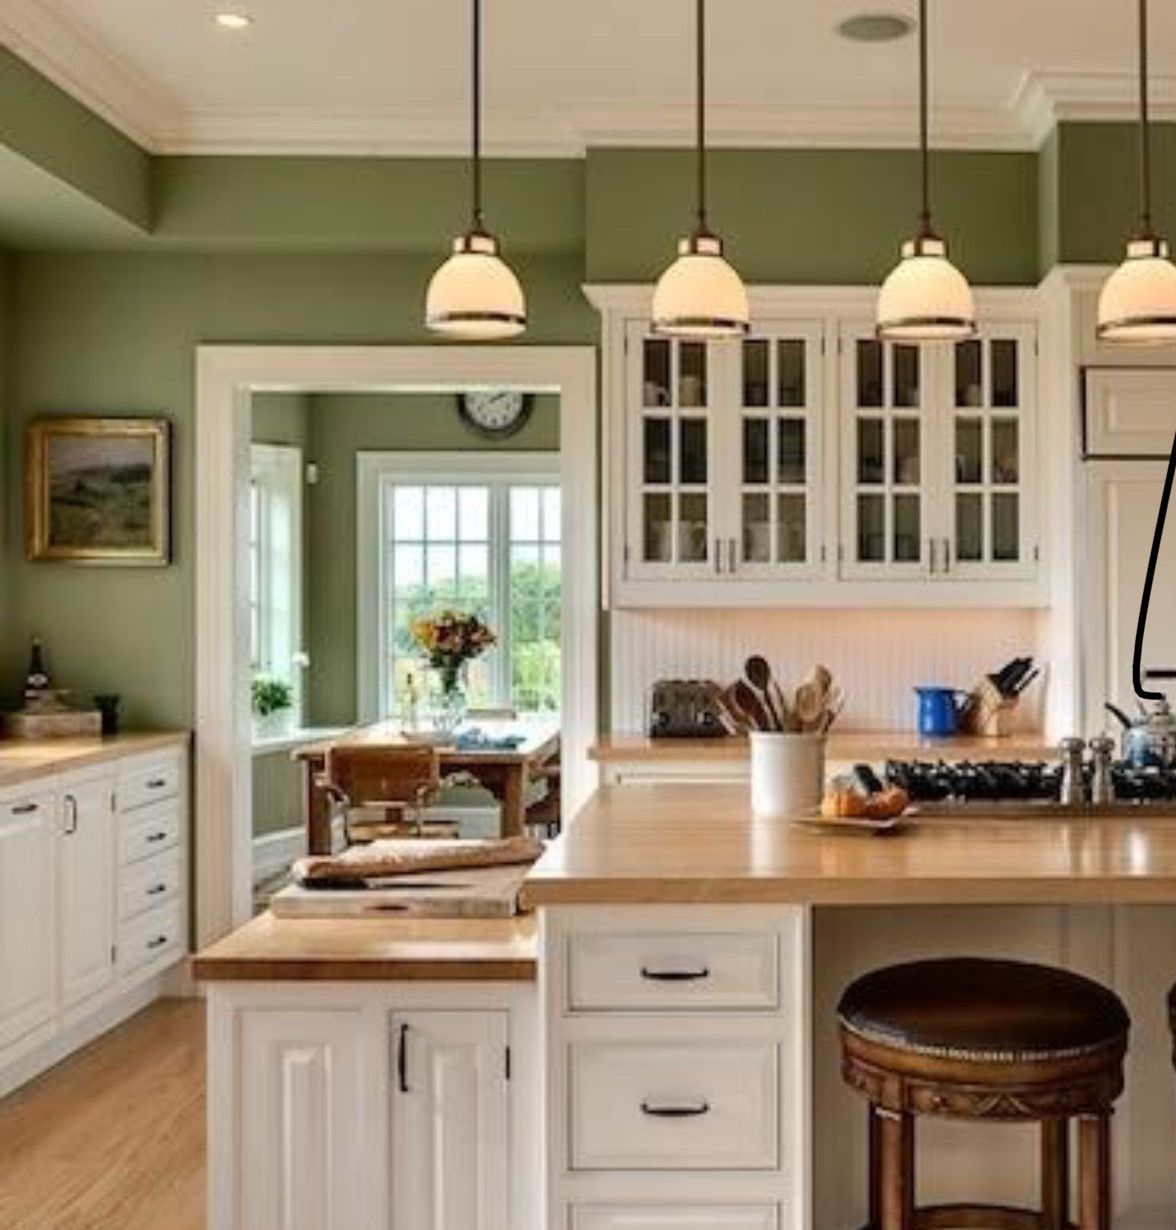 Green Kitchen With White Cabinetry